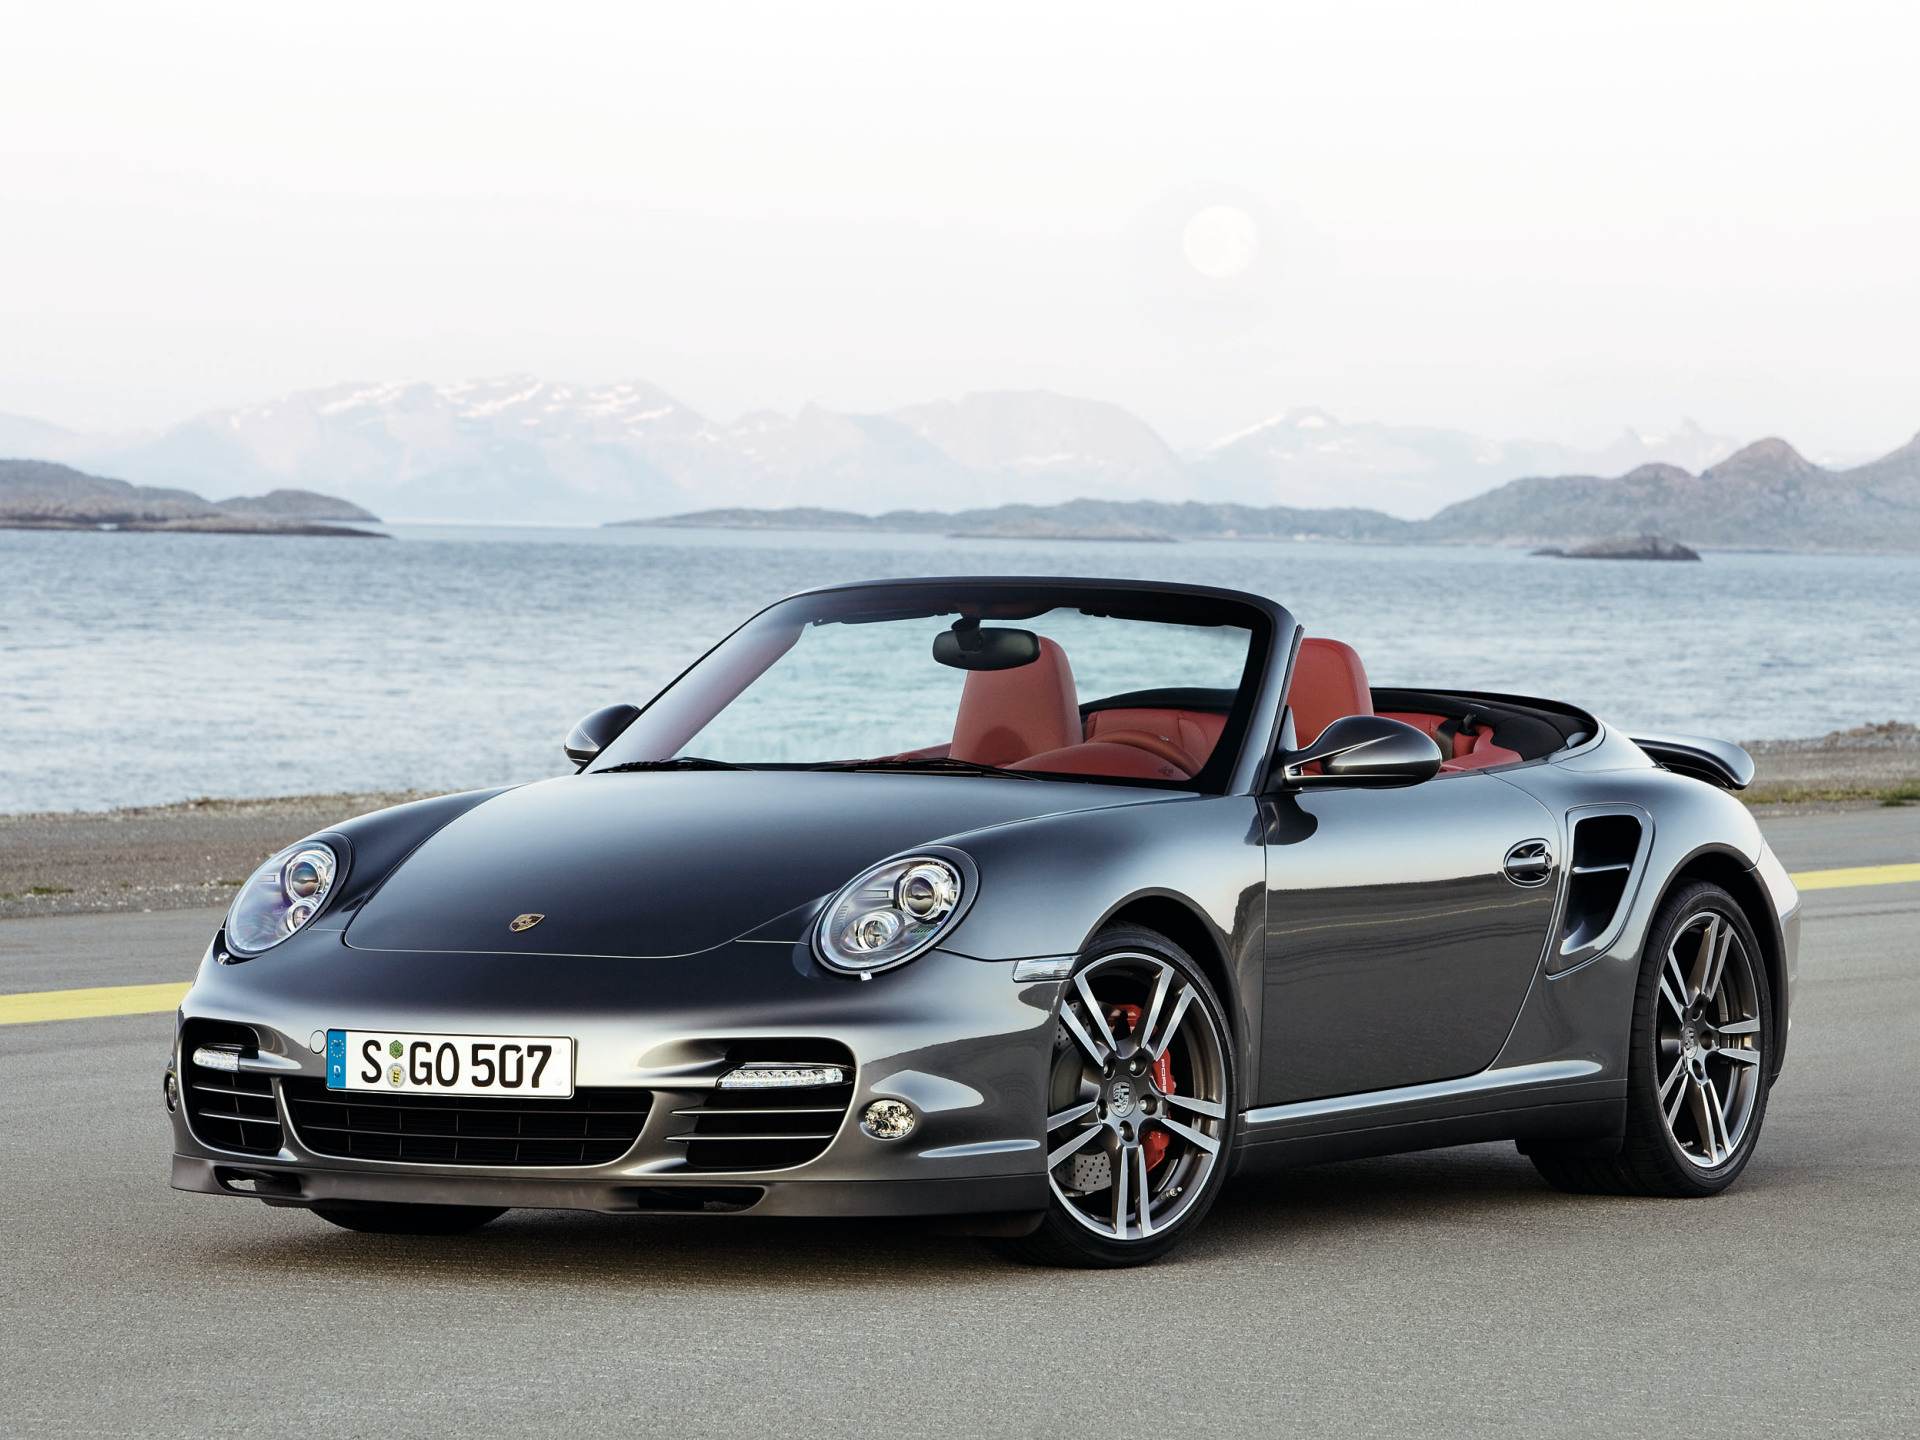 porsche 911 turbo cabrio technical details history photos on